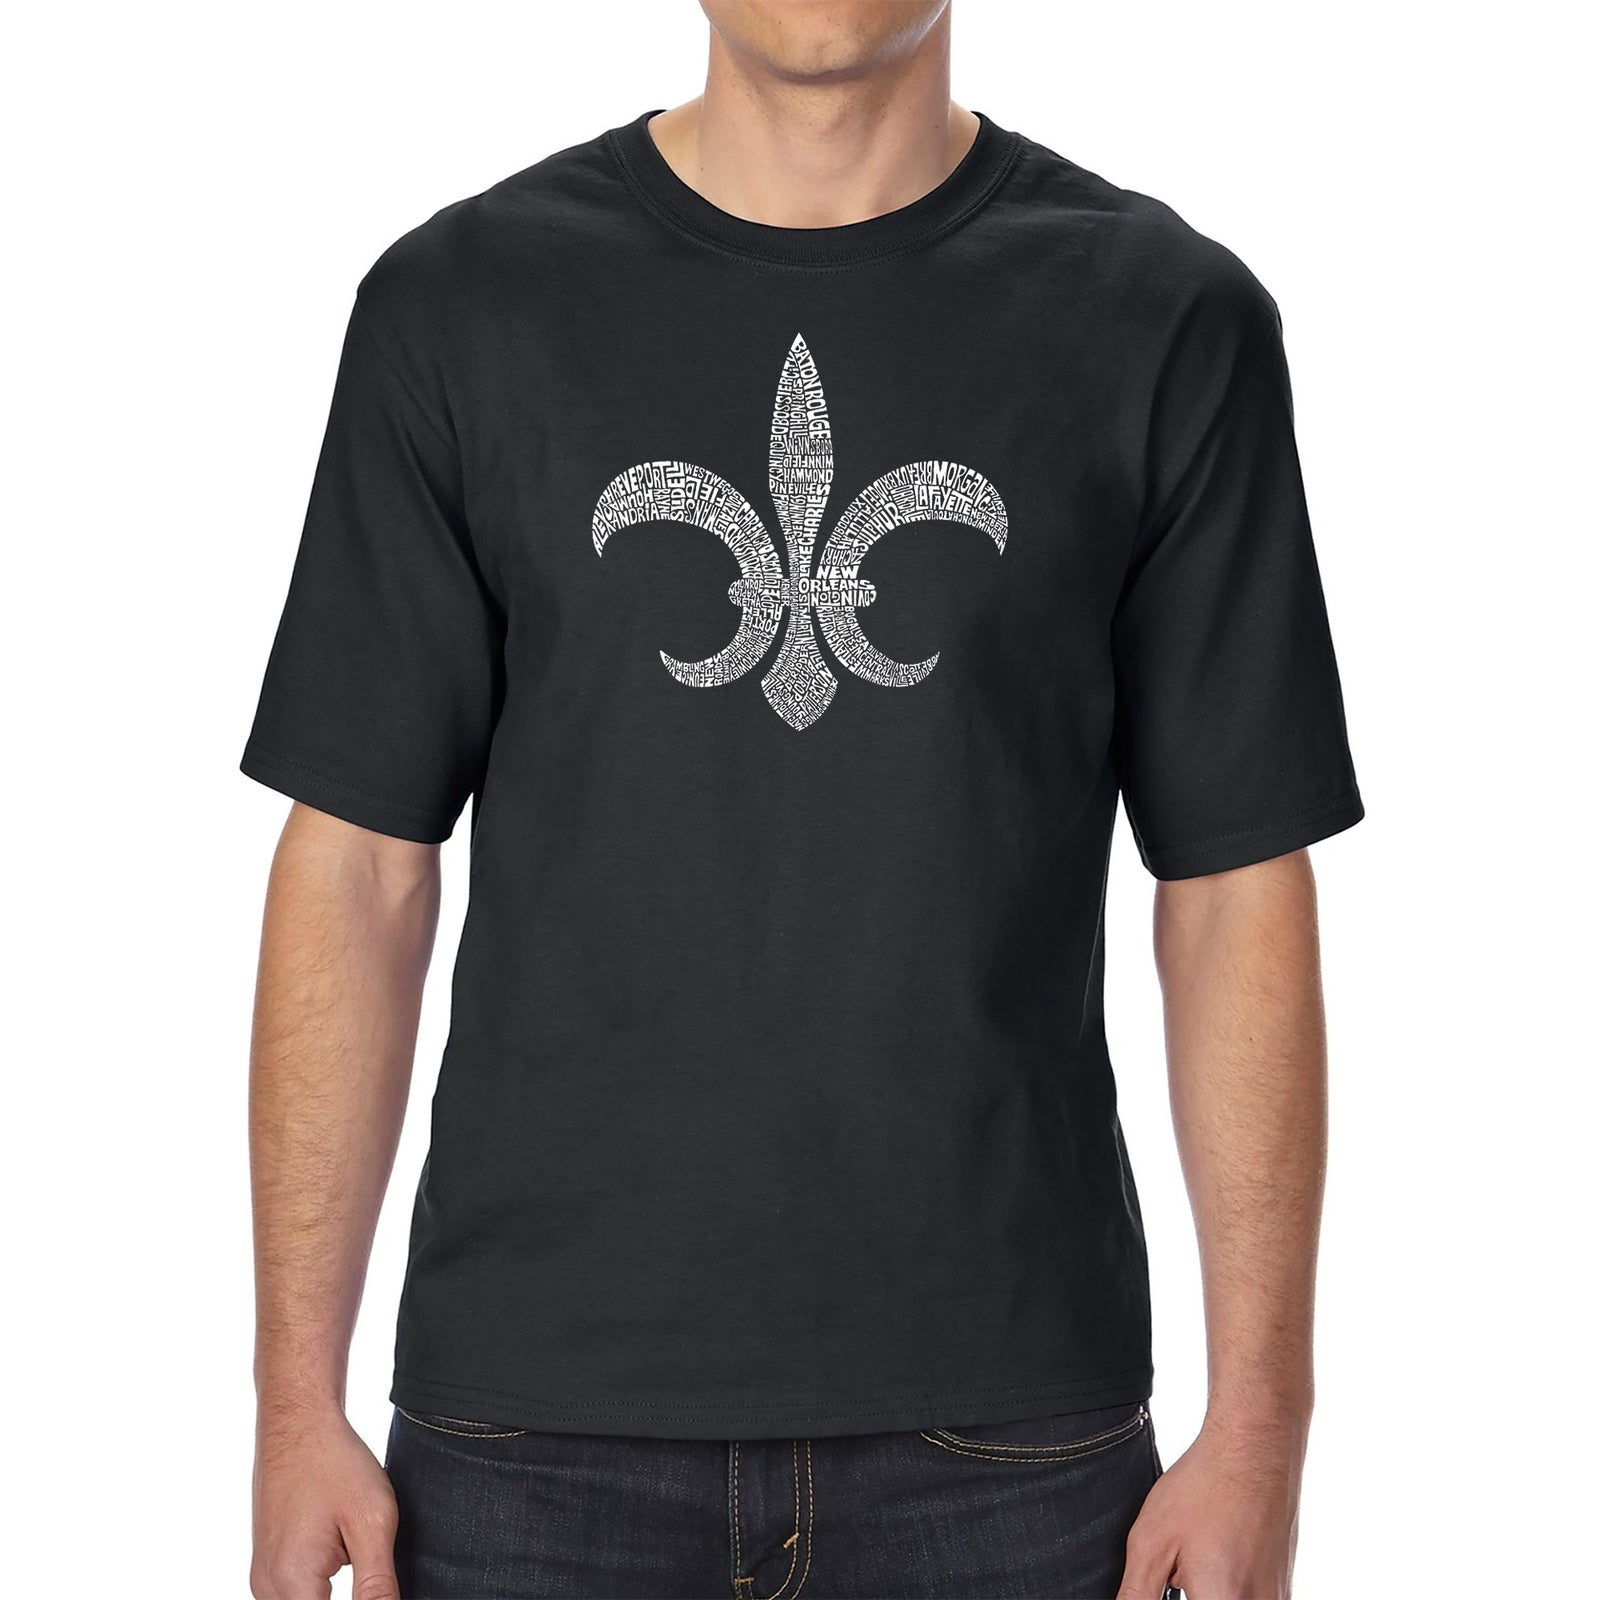 Men's Tall and Long Word Art T-shirt - FLEUR DE LIS - POPULAR LOUISIANA CITIES